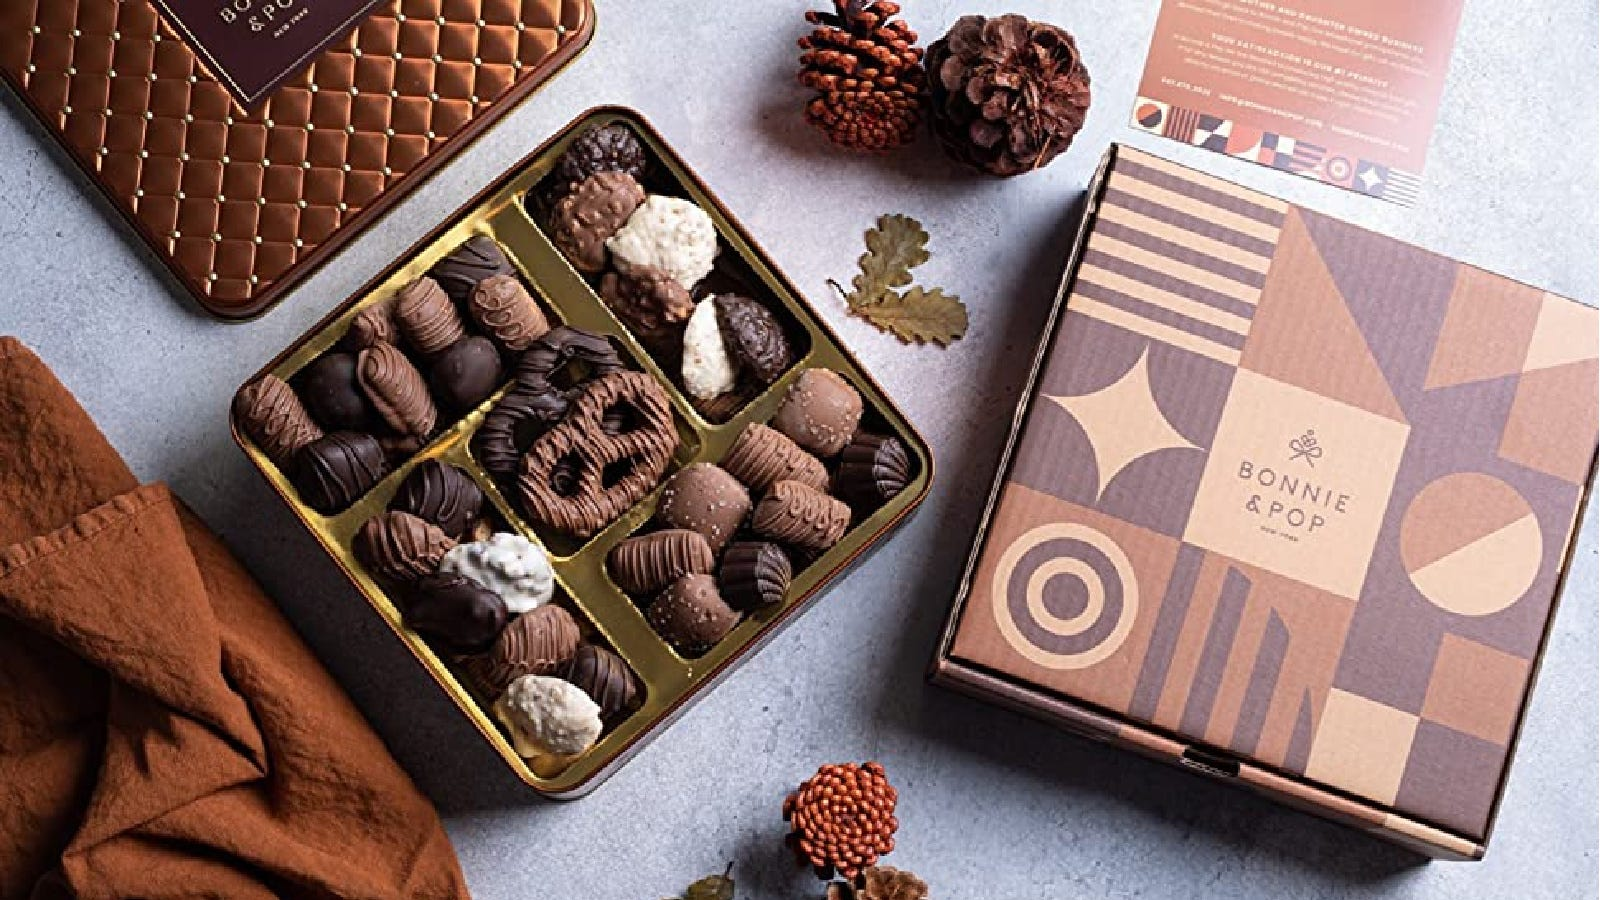 A lovely Bonnie and Pop box of assorted chocolates displayed, perfect for gifting.